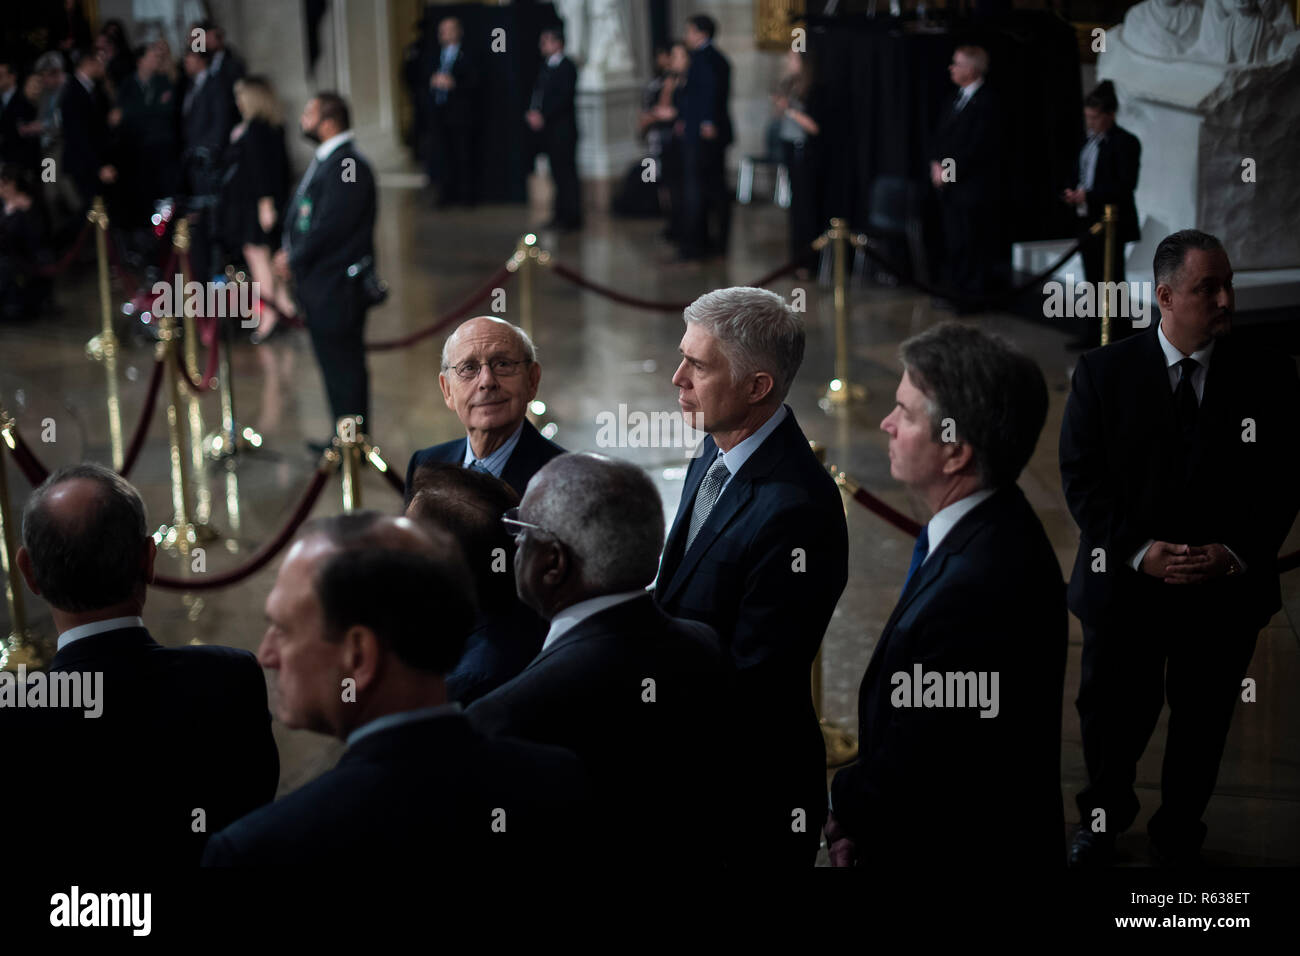 Washington, DC. 03rd Dec, 2018. WASHINGTON, DC - DECEMBER 3 : Supreme Court Associate Justice Stephen Breyer, Associate Justice Neil M. Gorsuch, and Associate Justice Brett M. Kavanaugh wait for the arrival of Former president George H.W. Bush to lie in State at the U.S. Capitol Rotunda on Capitol Hill on Monday, Dec. 03, 2018 in Washington, DC. (Photo by Jabin Botsford/Pool) | usage worldwide Credit: dpa/Alamy Live News - Stock Image